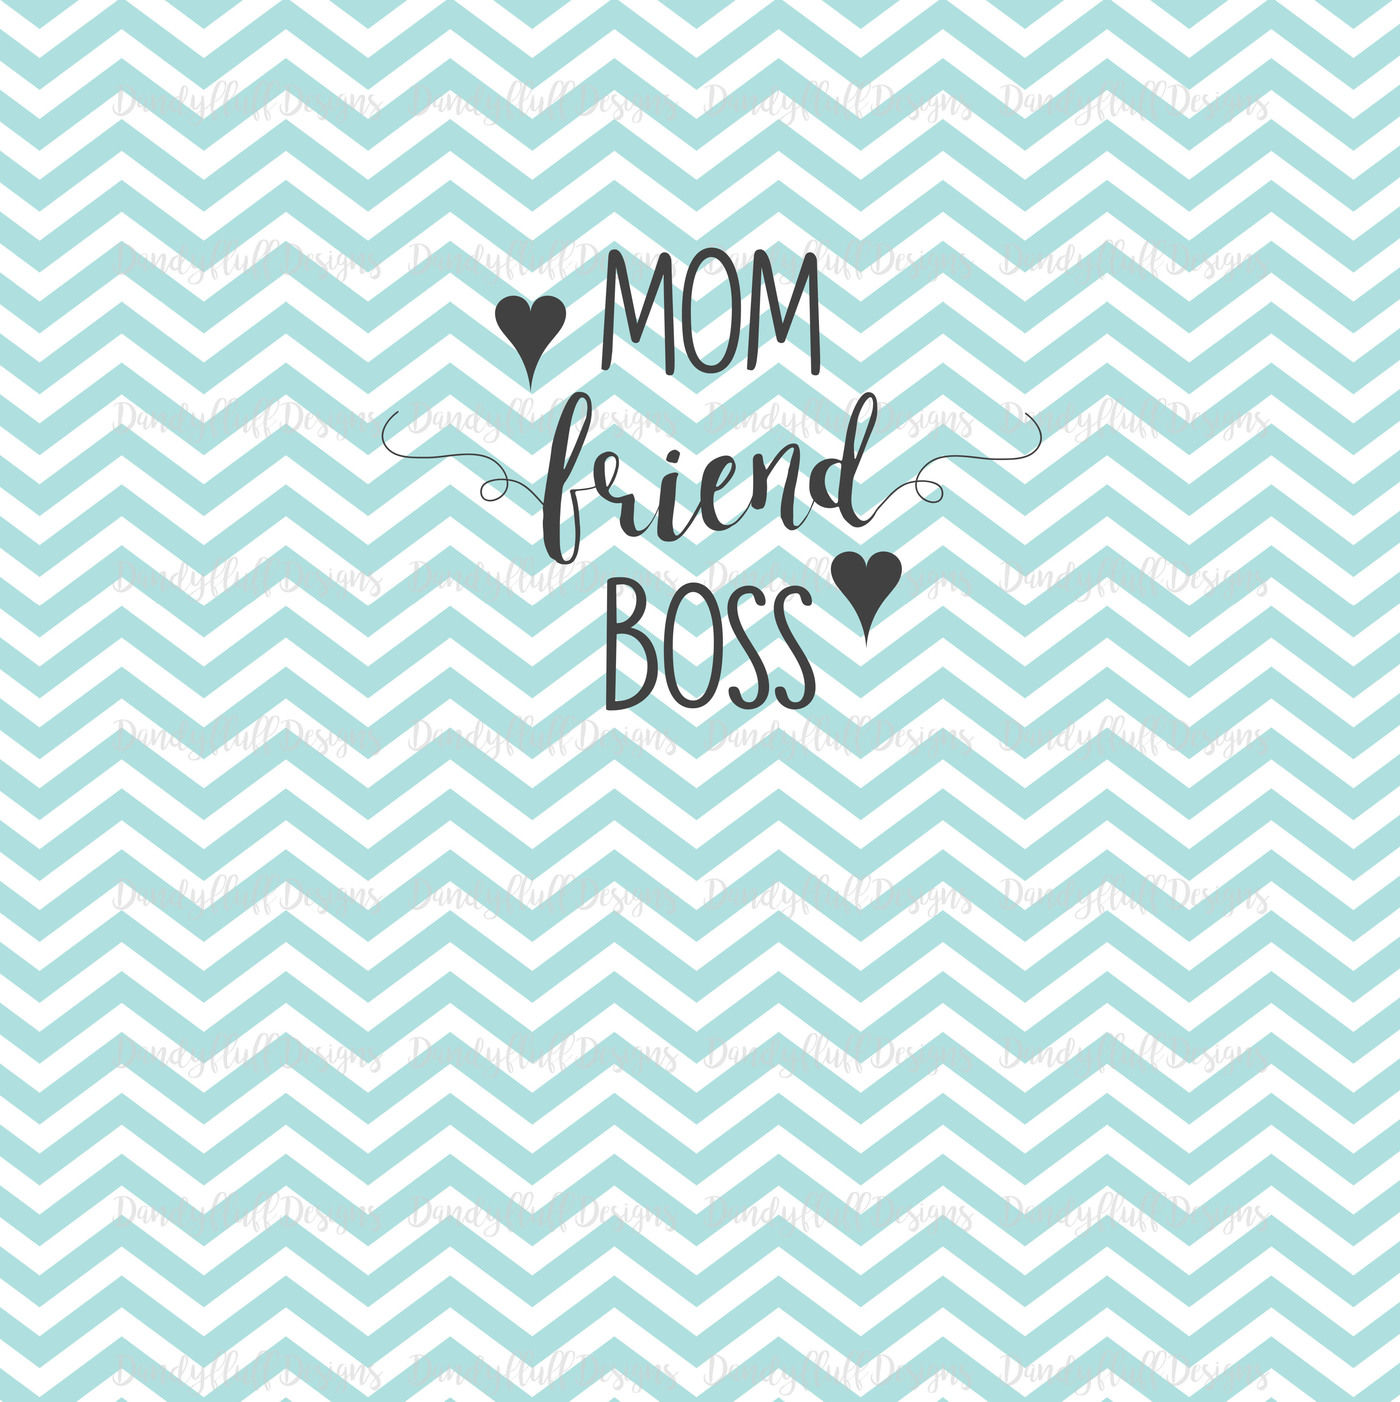 Mother S Day Svg Cutting File Mom Friend Boss For Silhouette And